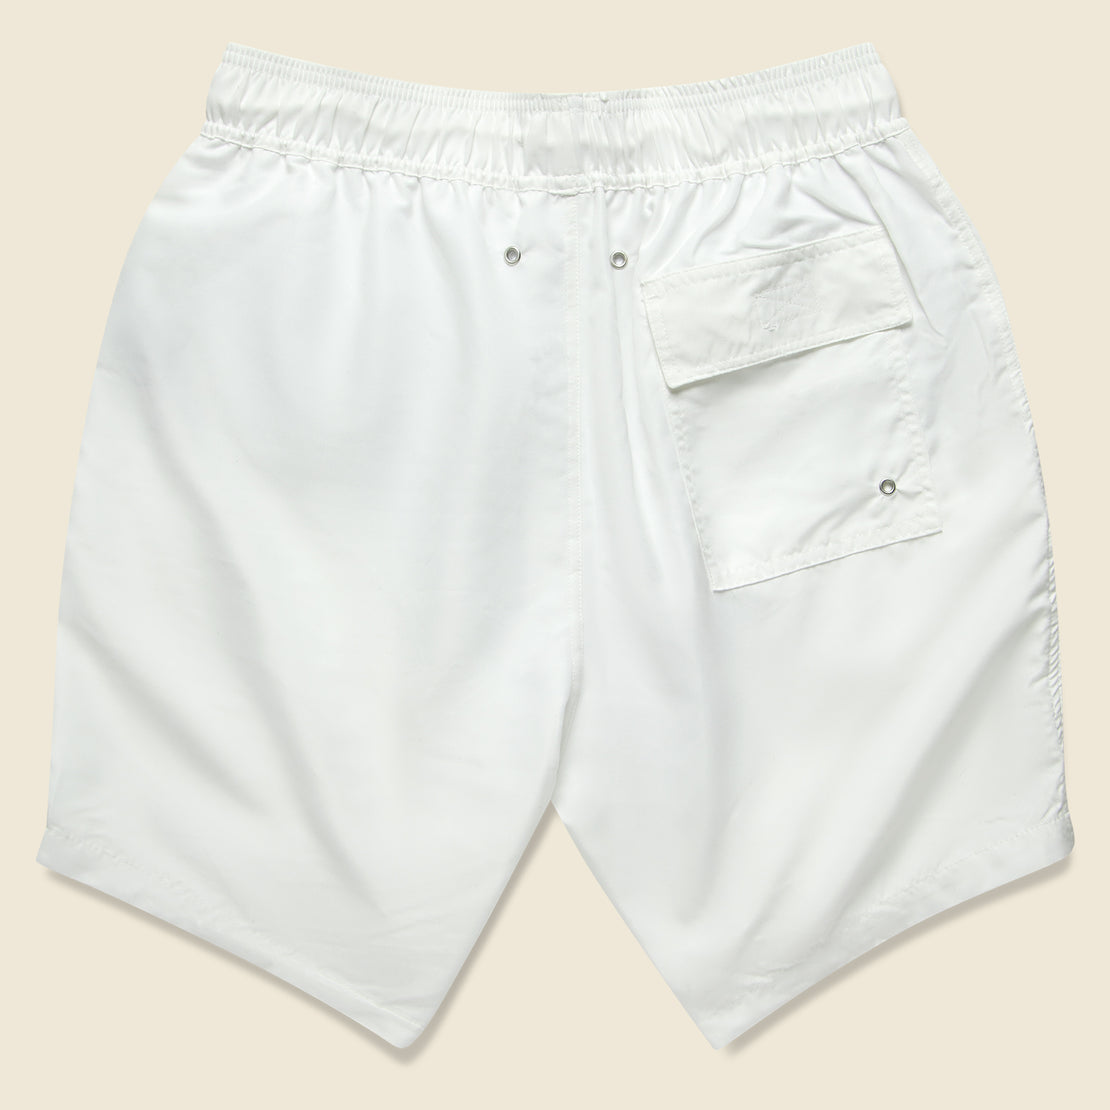 Seal Swim Trunk - White